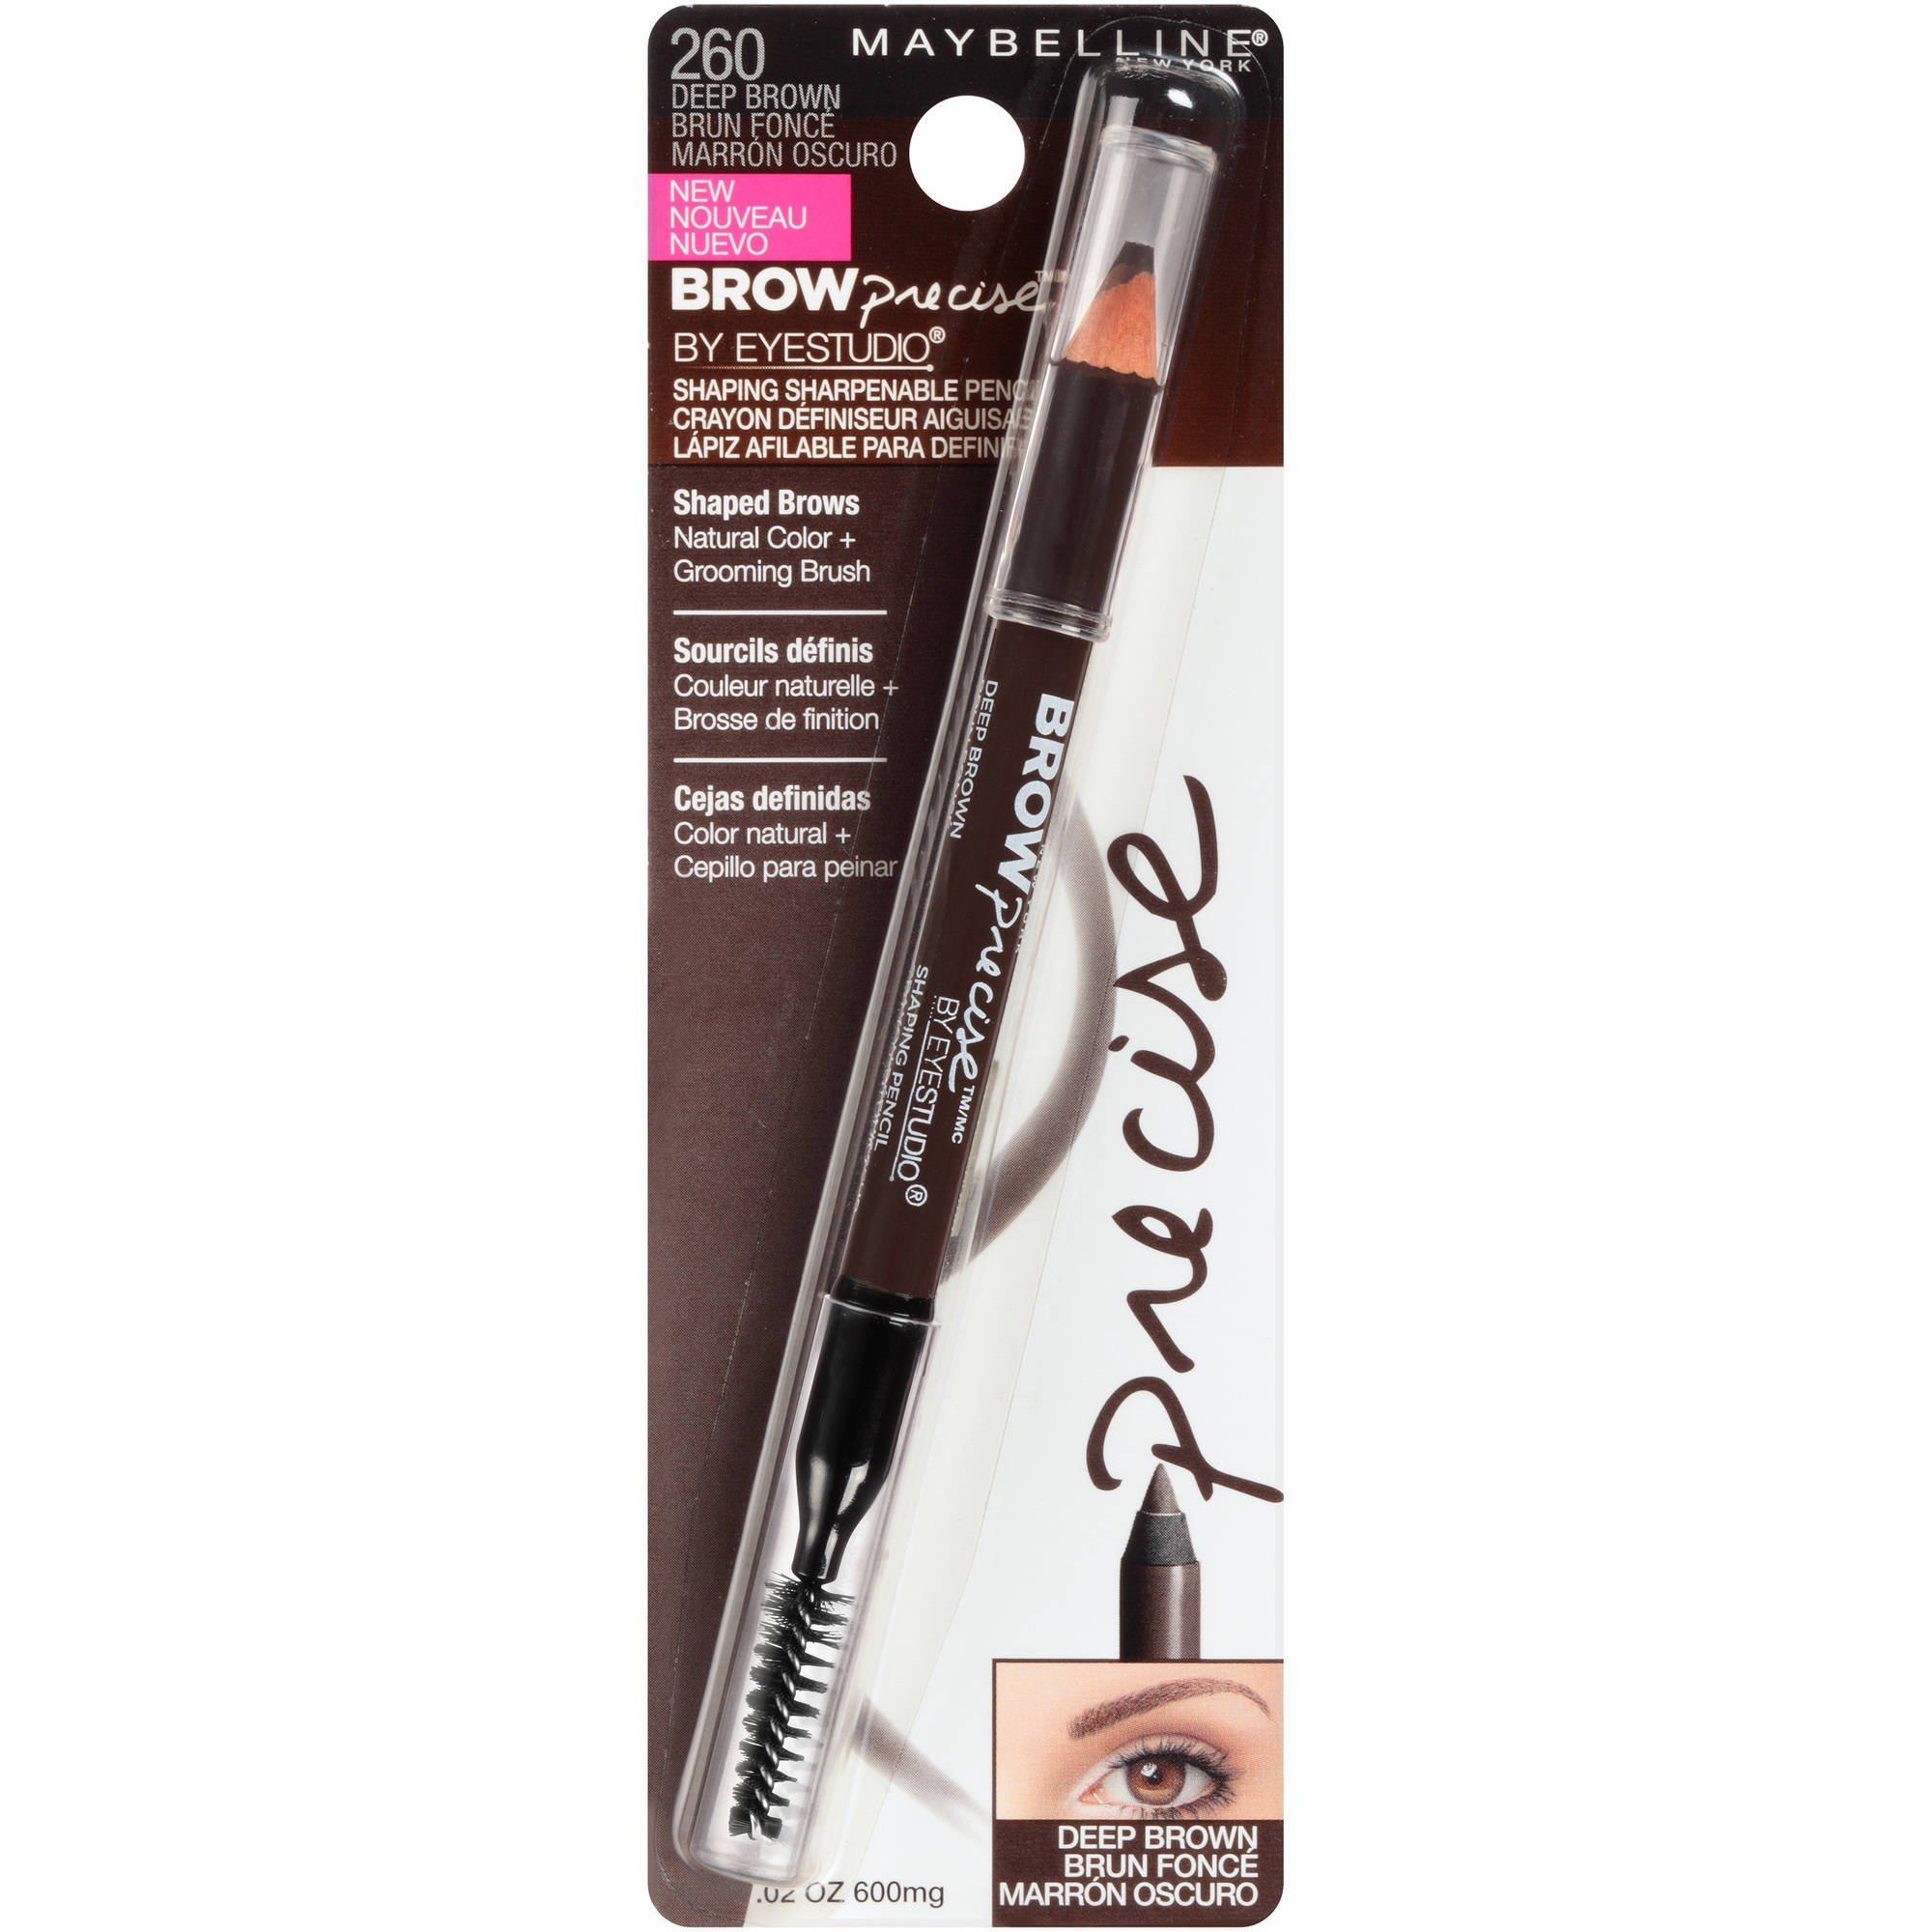 Maybelline Brow Precise Shaping Eyebrow Pencil Deep Brown 002 Oz